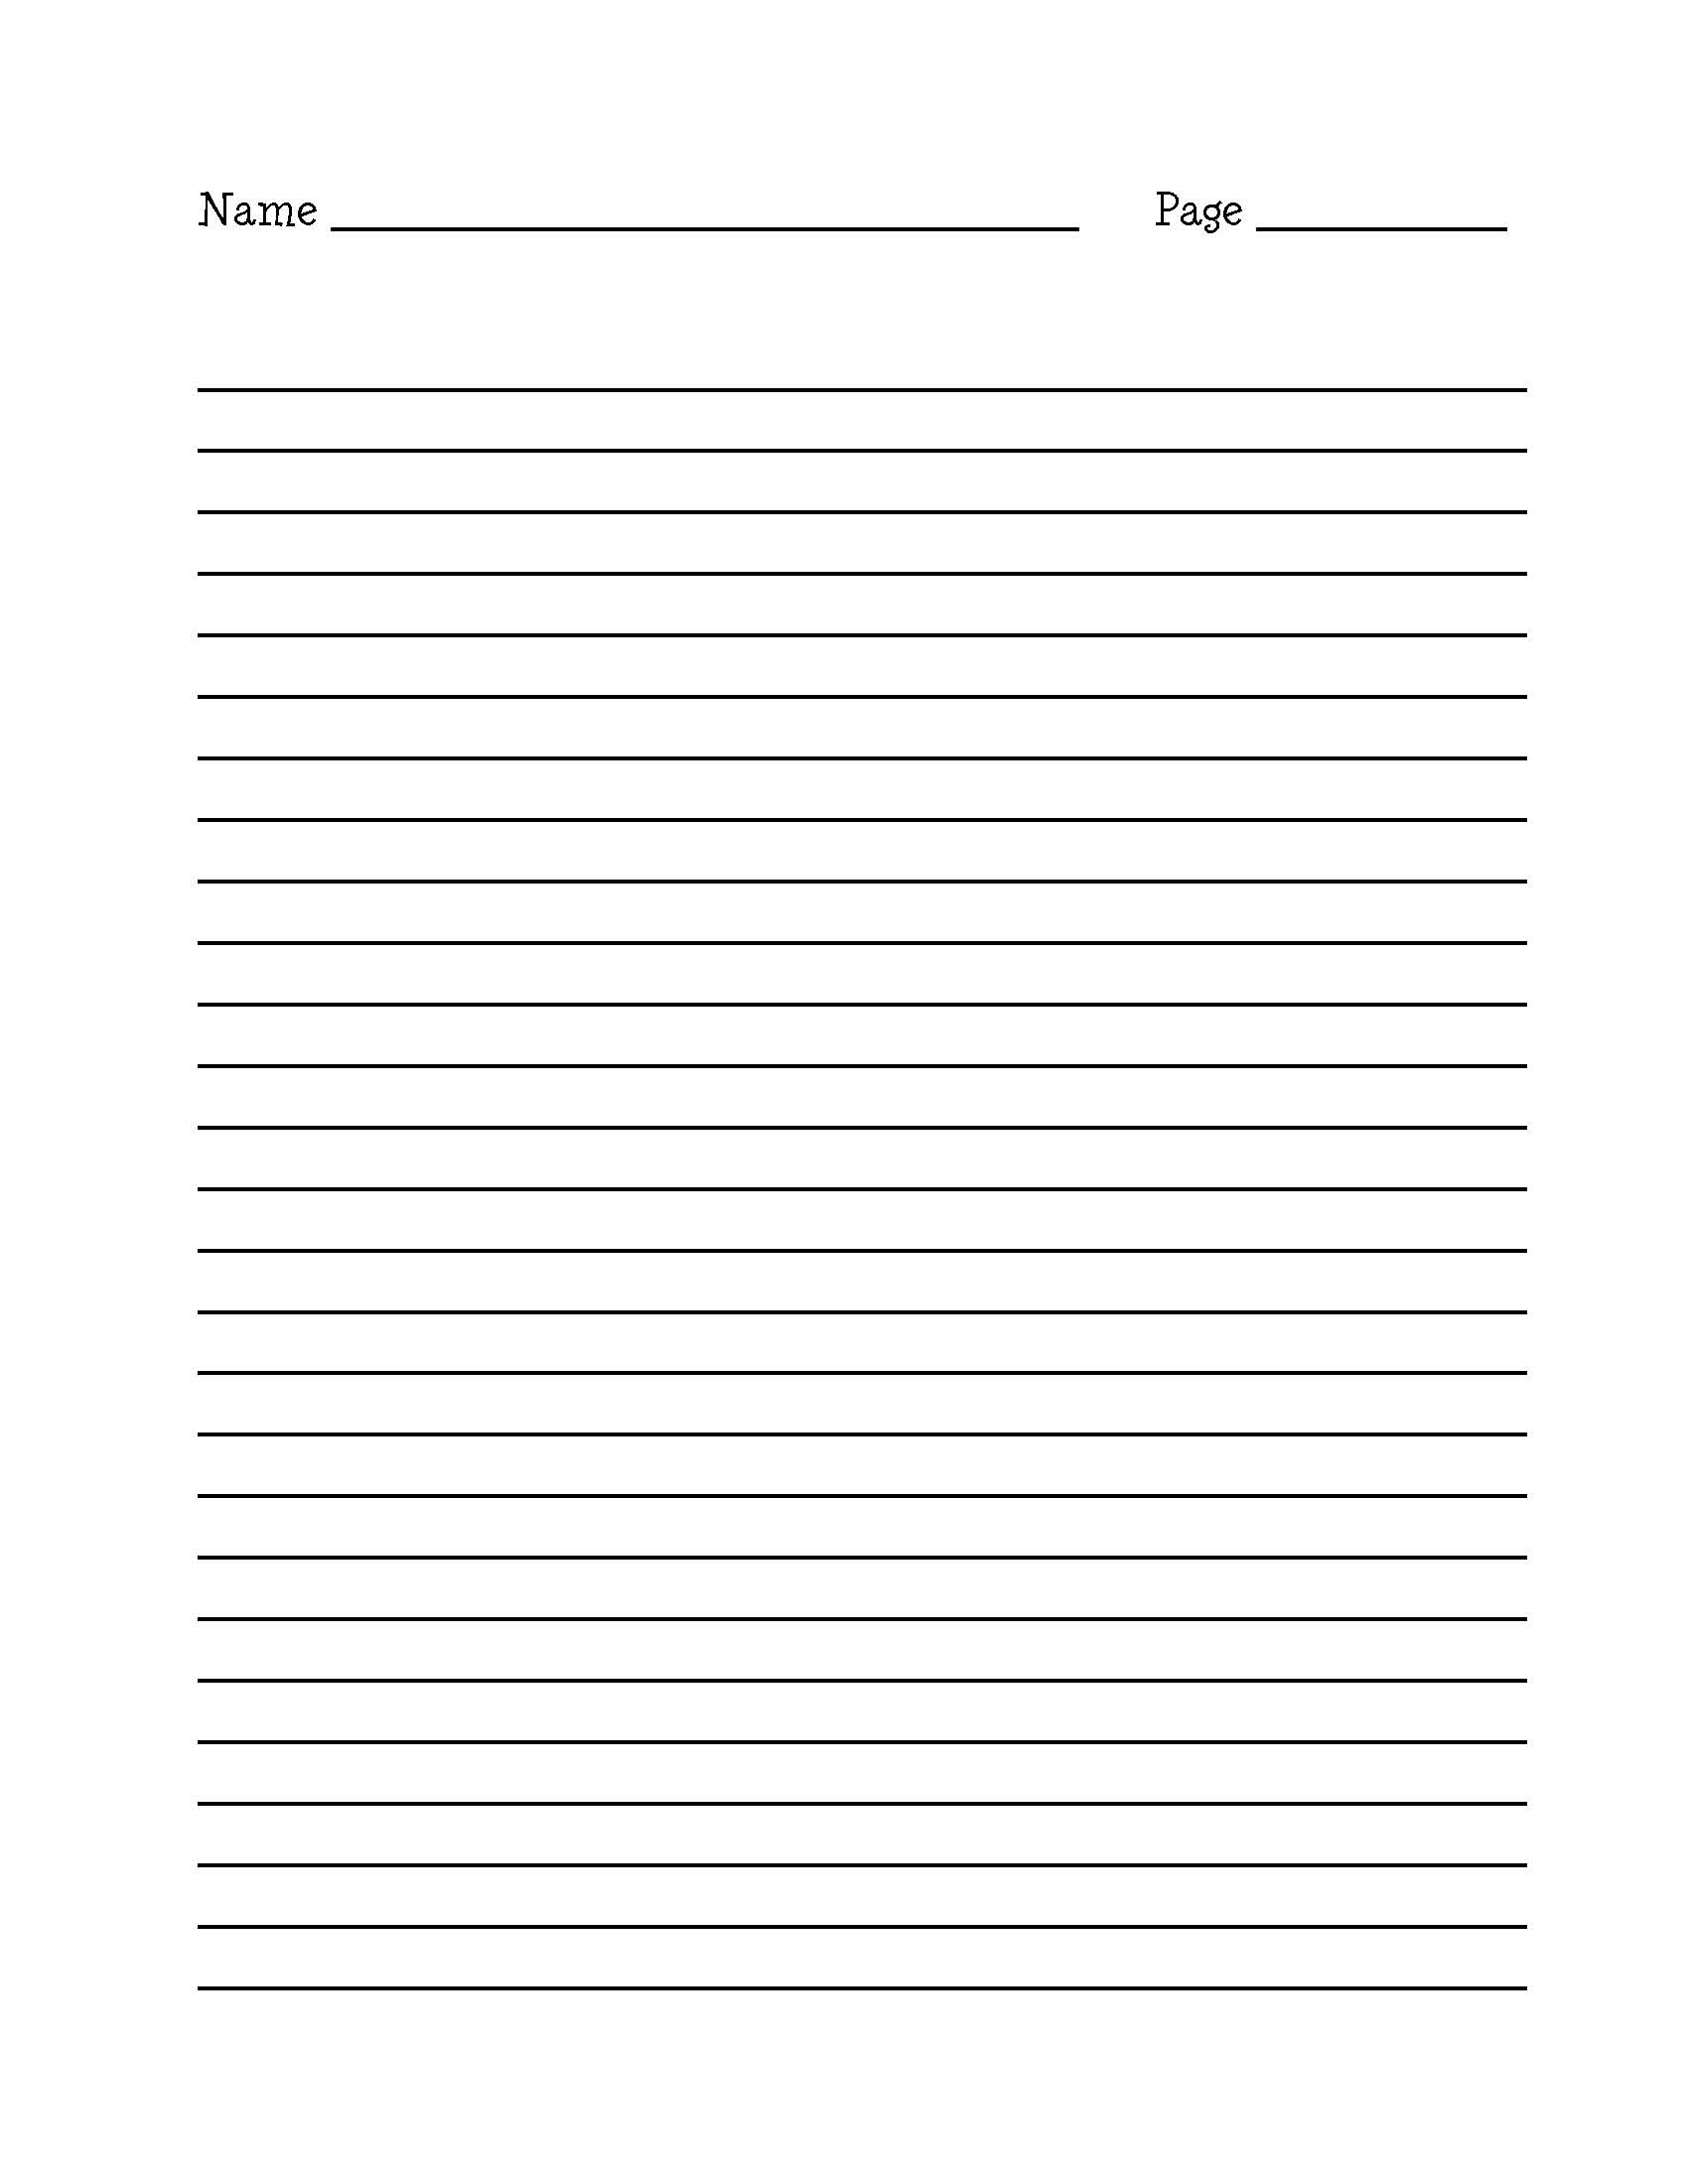 School Themed Lined Writing Paper: School Themed, Lined, Writing Paper Can  Make You Love Telling You All Their Ideas And Dreams For This Very Special  Year!  Can You Print On Lined Paper